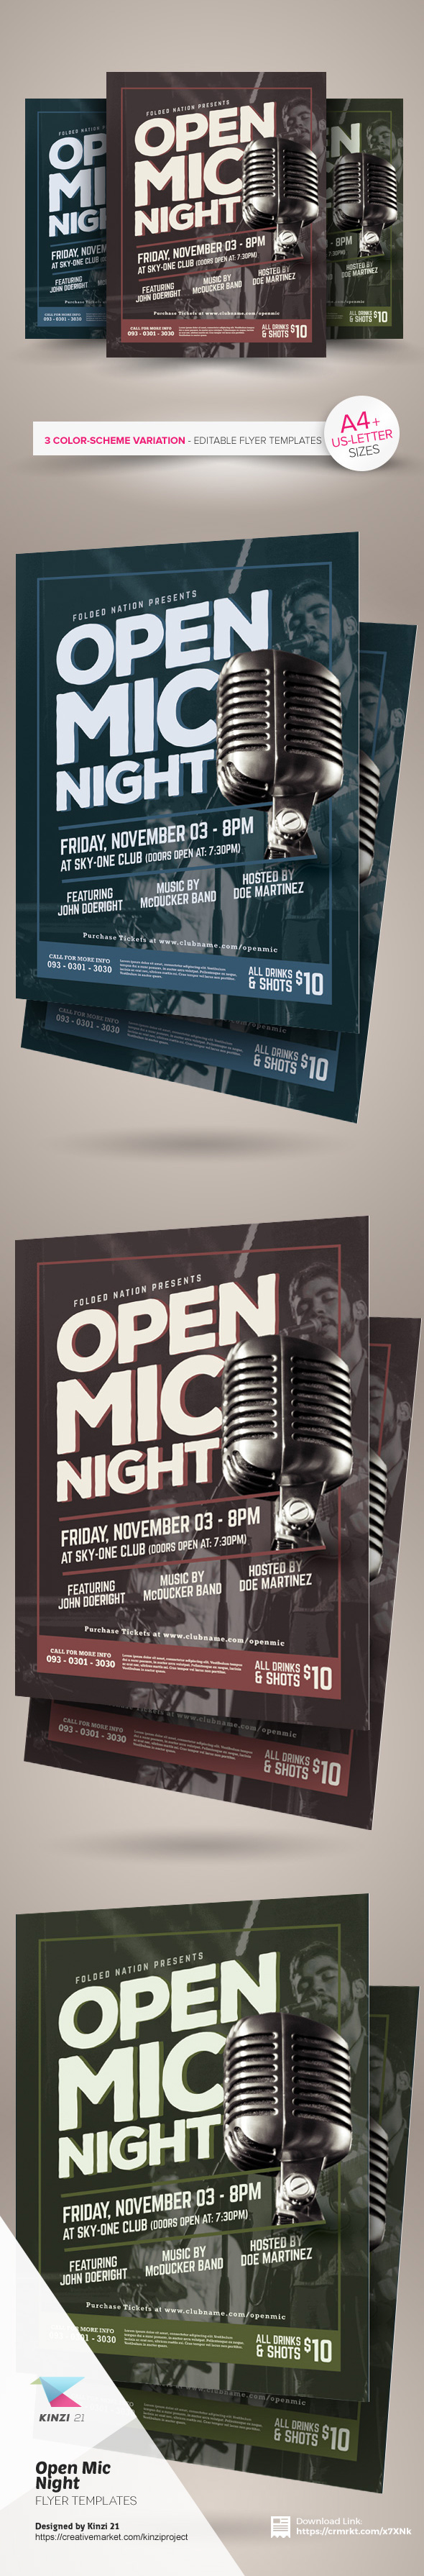 open mic night flyer template on behance open mic night flyer template are fully editable design templates created for on creative market more info of the templates and how to get the